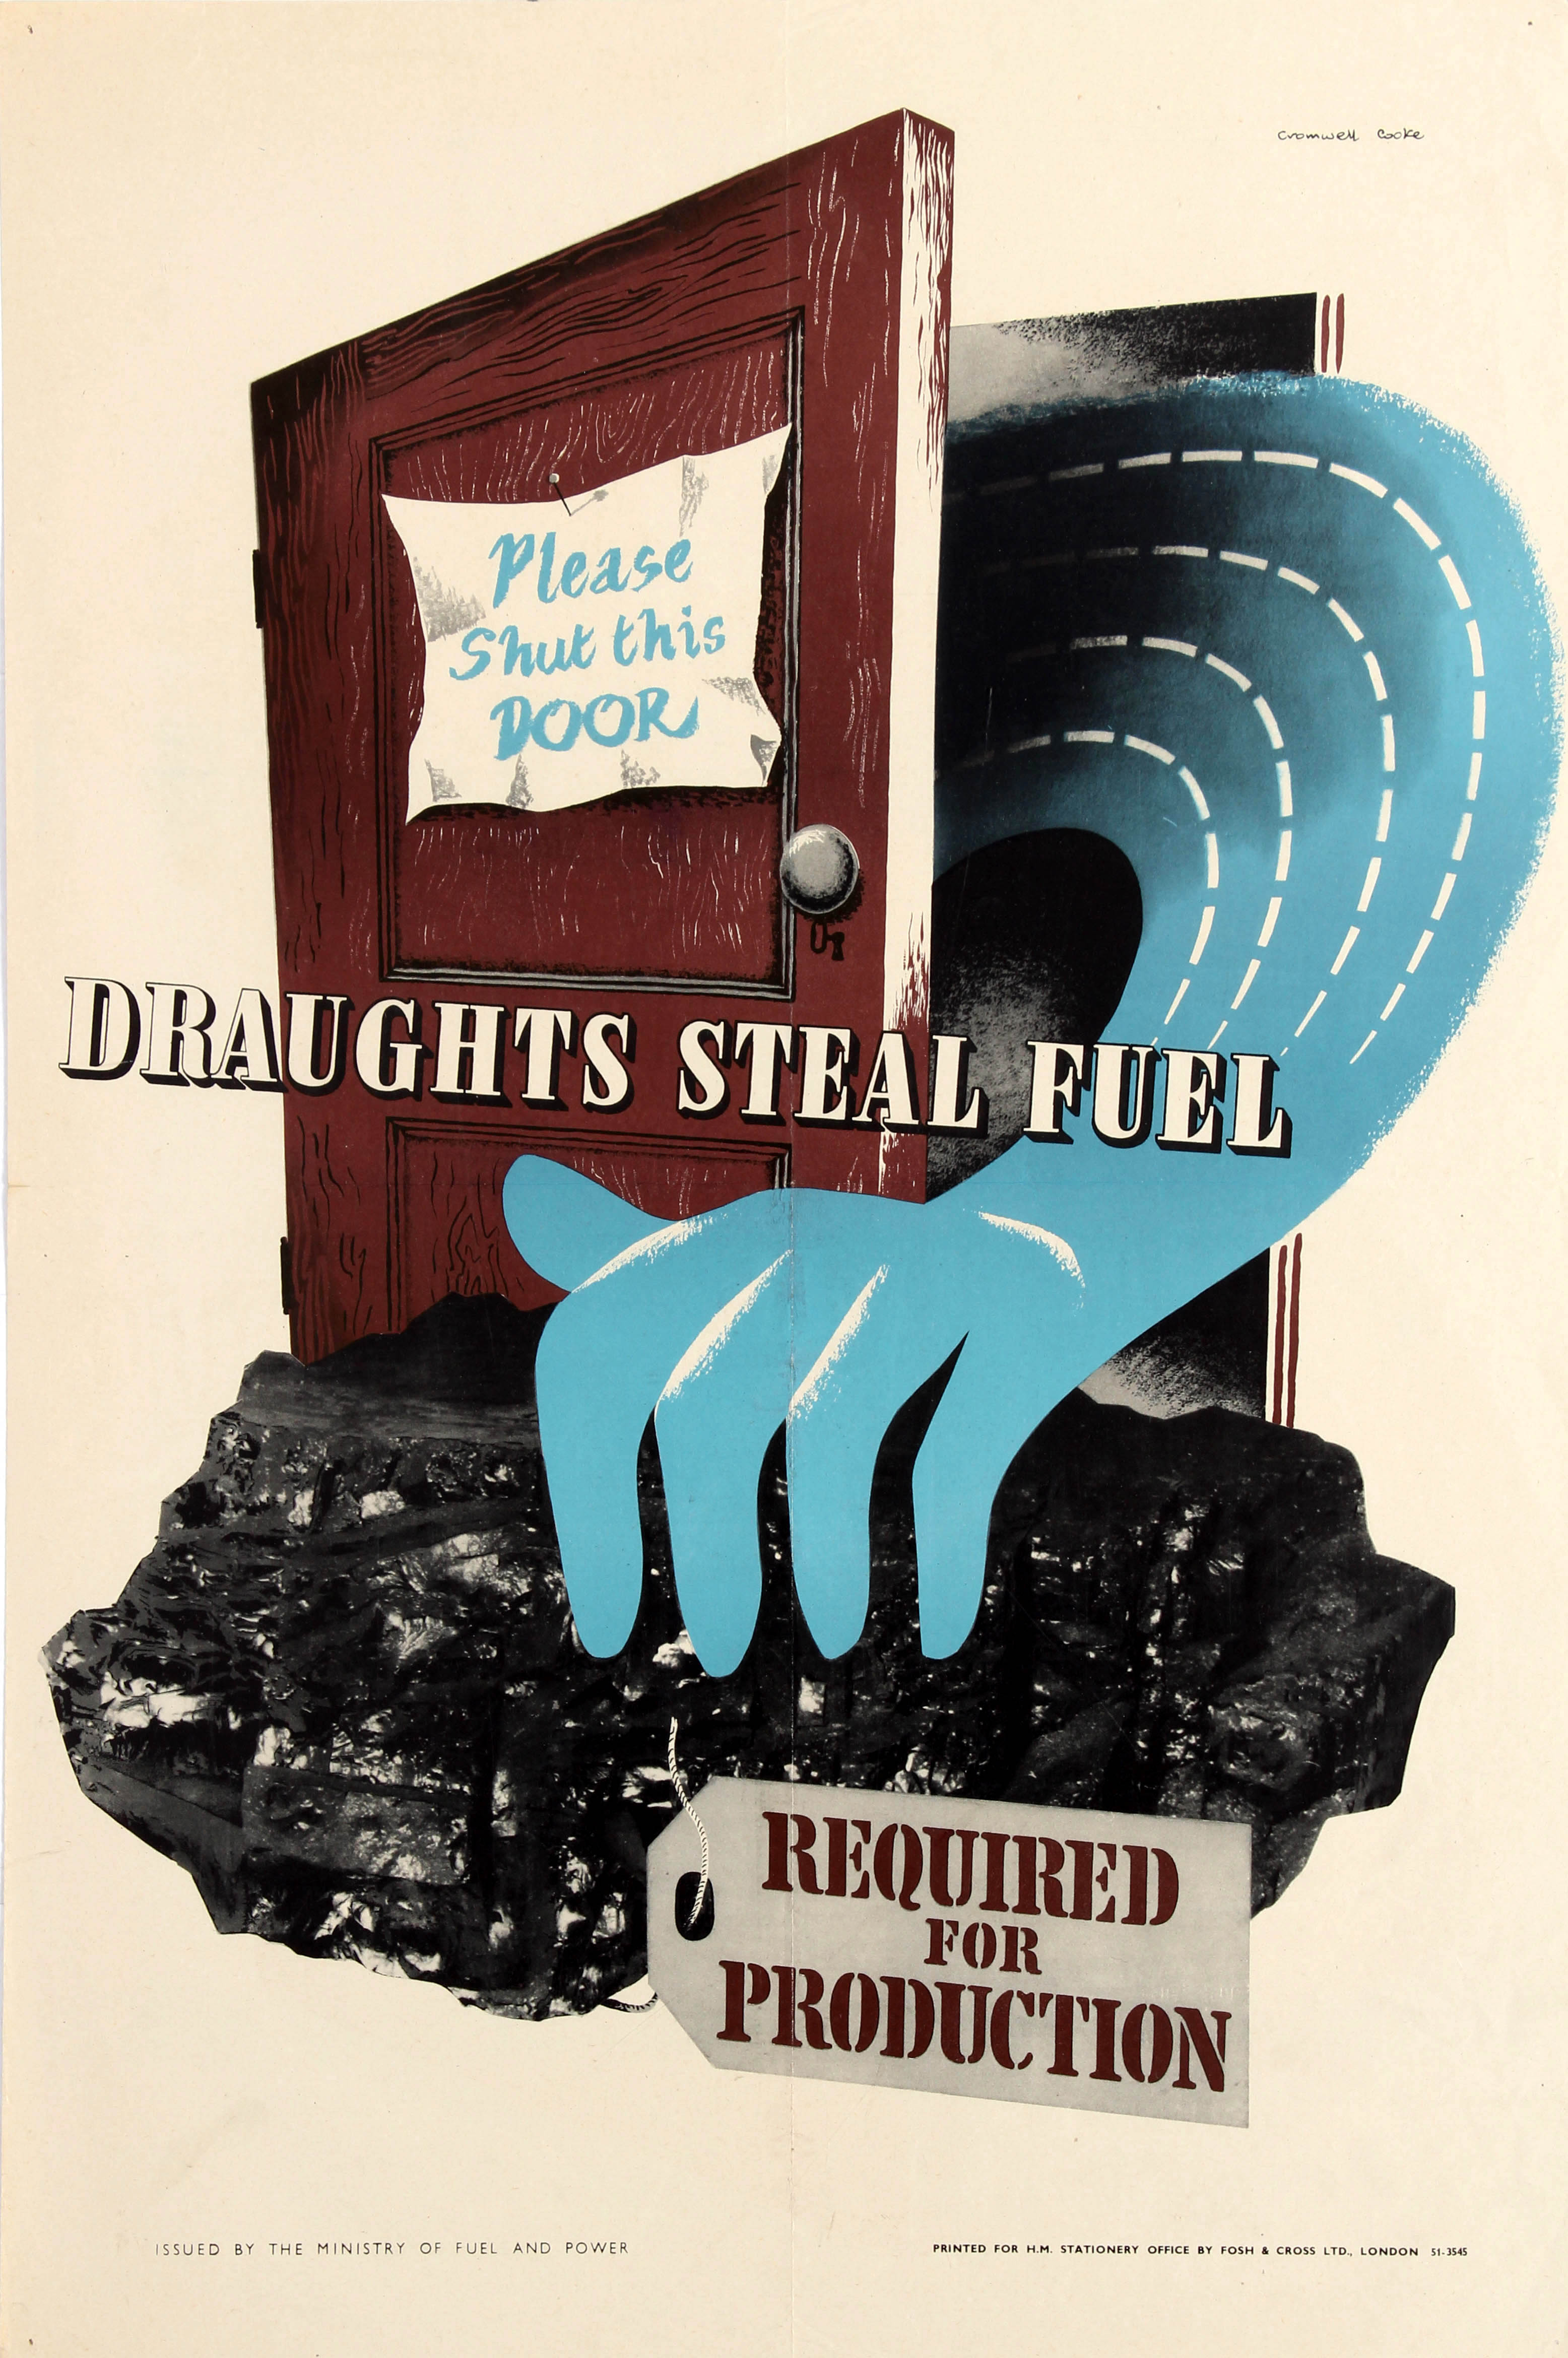 Lot 31 - War Poster Draughts Steal Fuel WWII Home Front UK